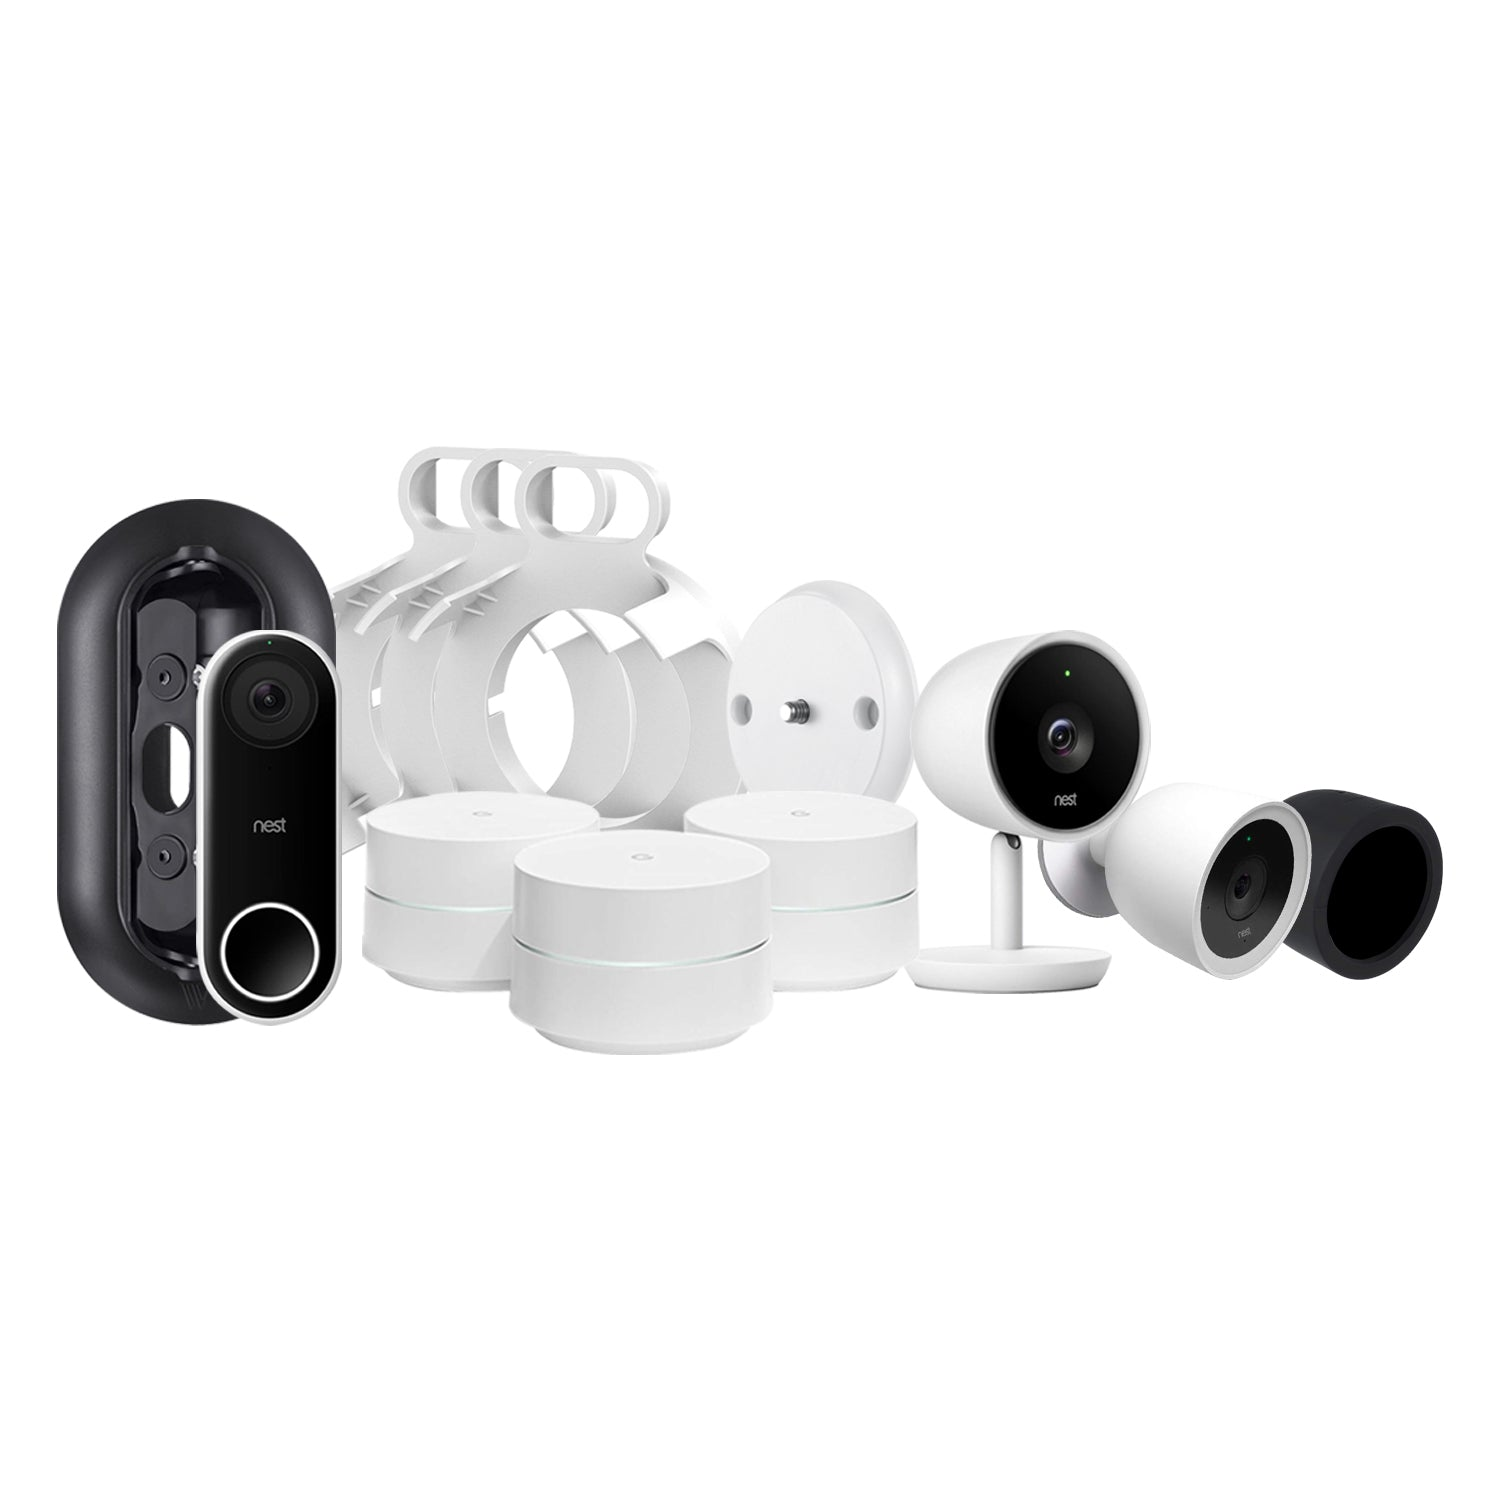 3-Pack Google WiFi System, Nest Cam IQ Indoor & IQ Outdoor Camera, and Nest  Hello Video Doorbell Bundled with Magnetic Wall Mount, AC Outlet Mount,